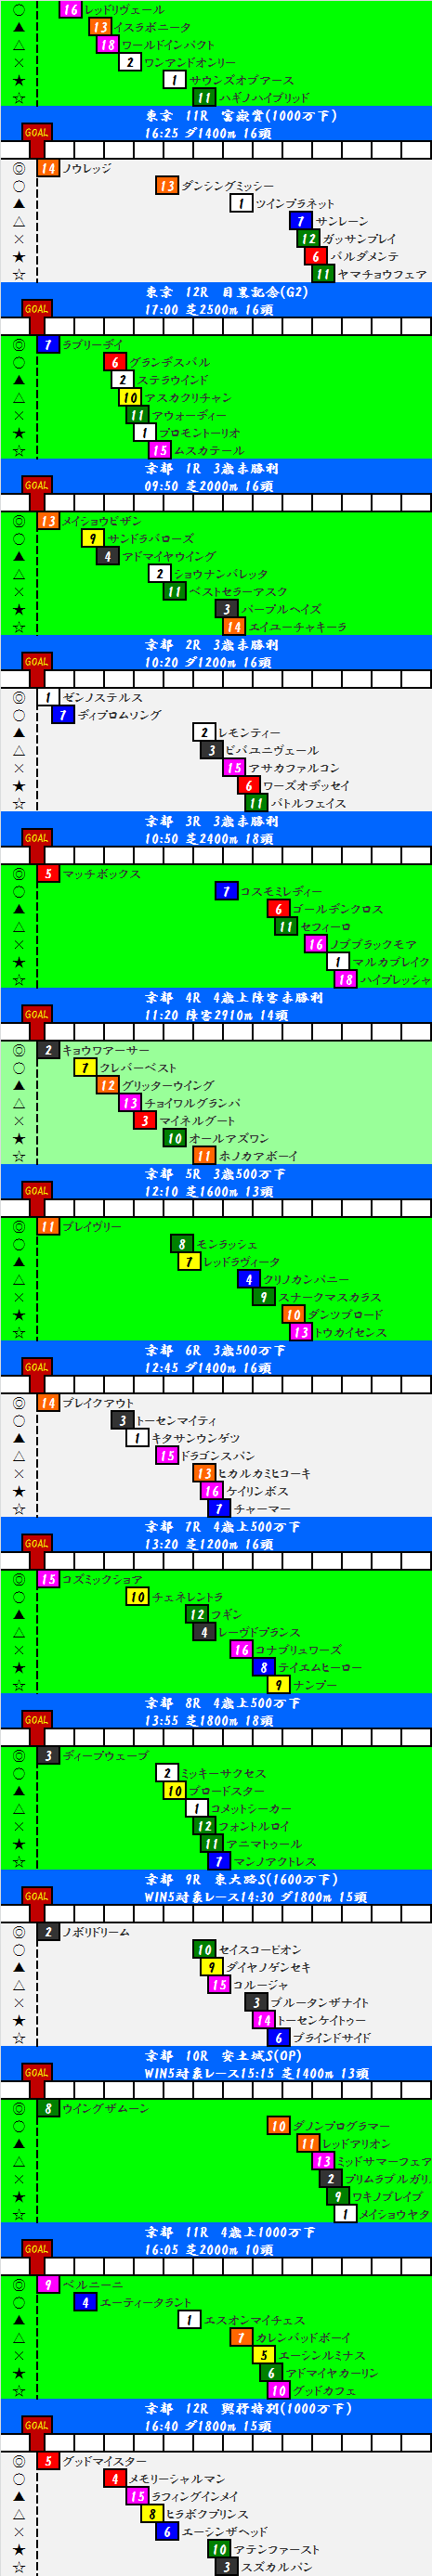 201406012.png